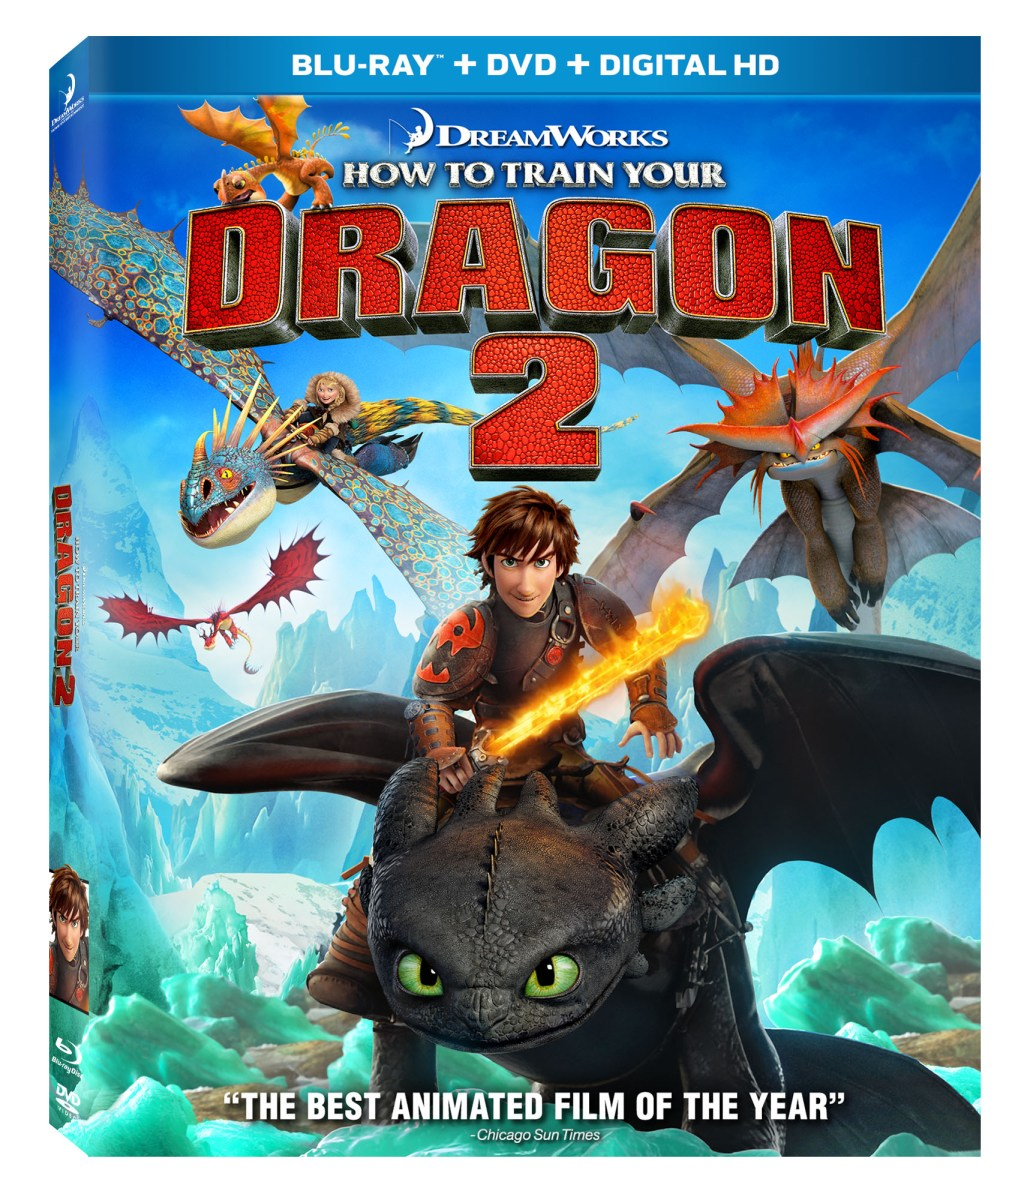 How to Train Your Dragon 2 #Giveaway #DragonsInsiders #HTTYD2